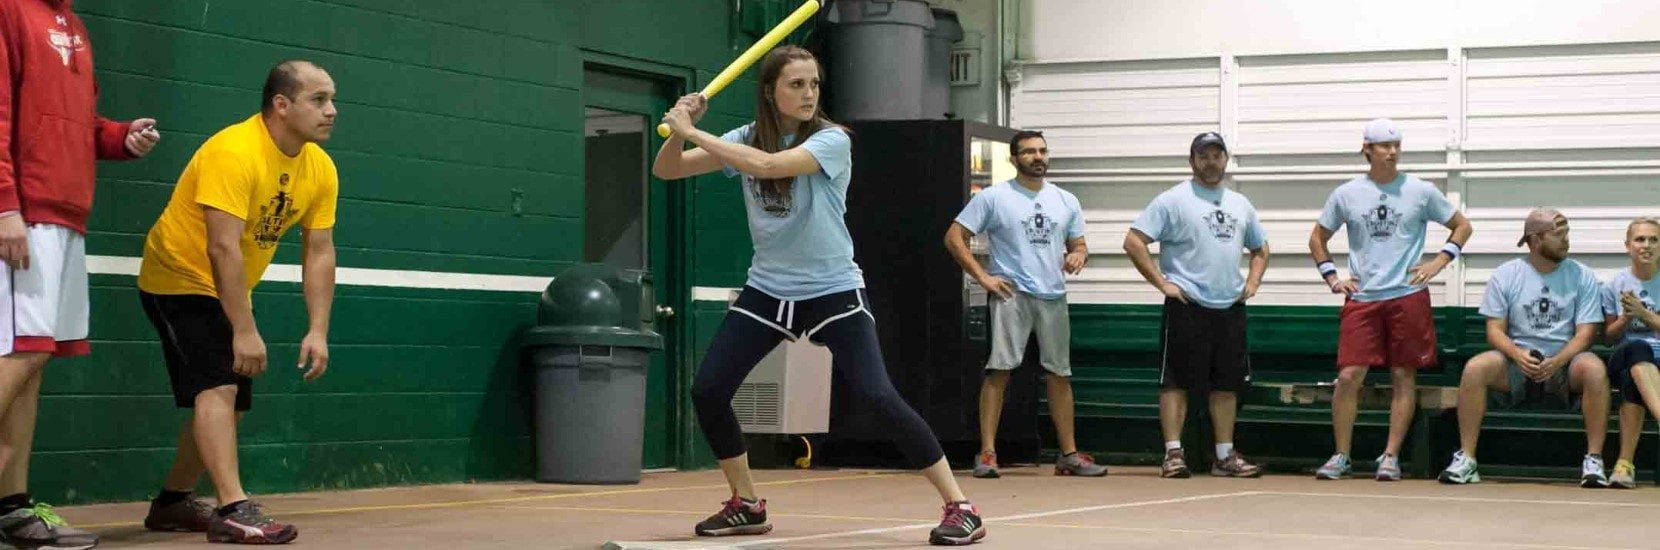 wiffleball league for young professionals in Dallas